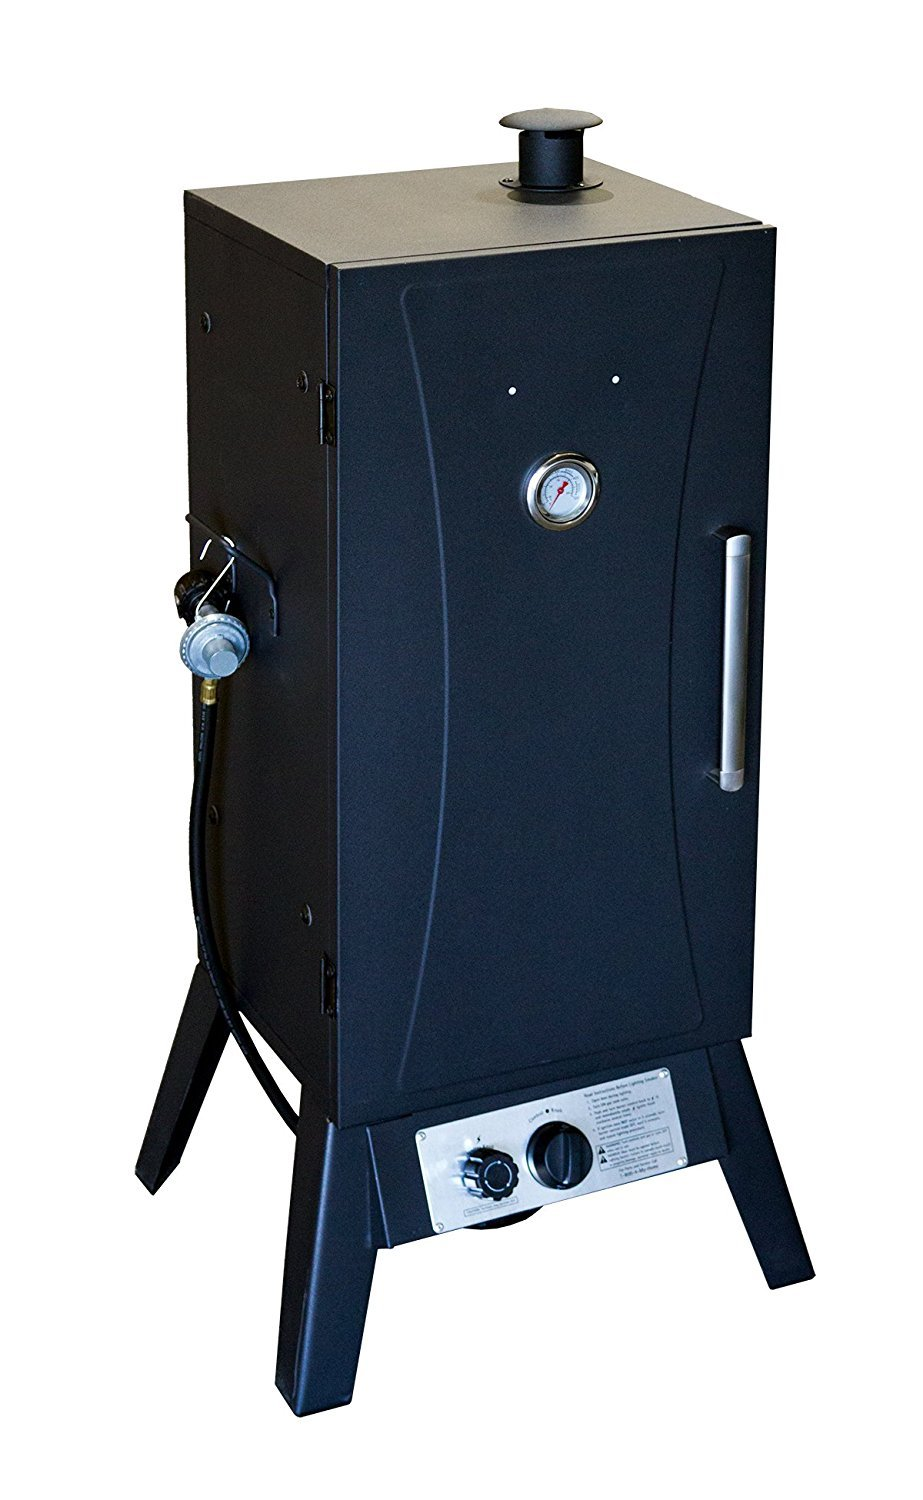 AZ Patio Heaters HIL-5525-SMK Propane Vertical Smoker